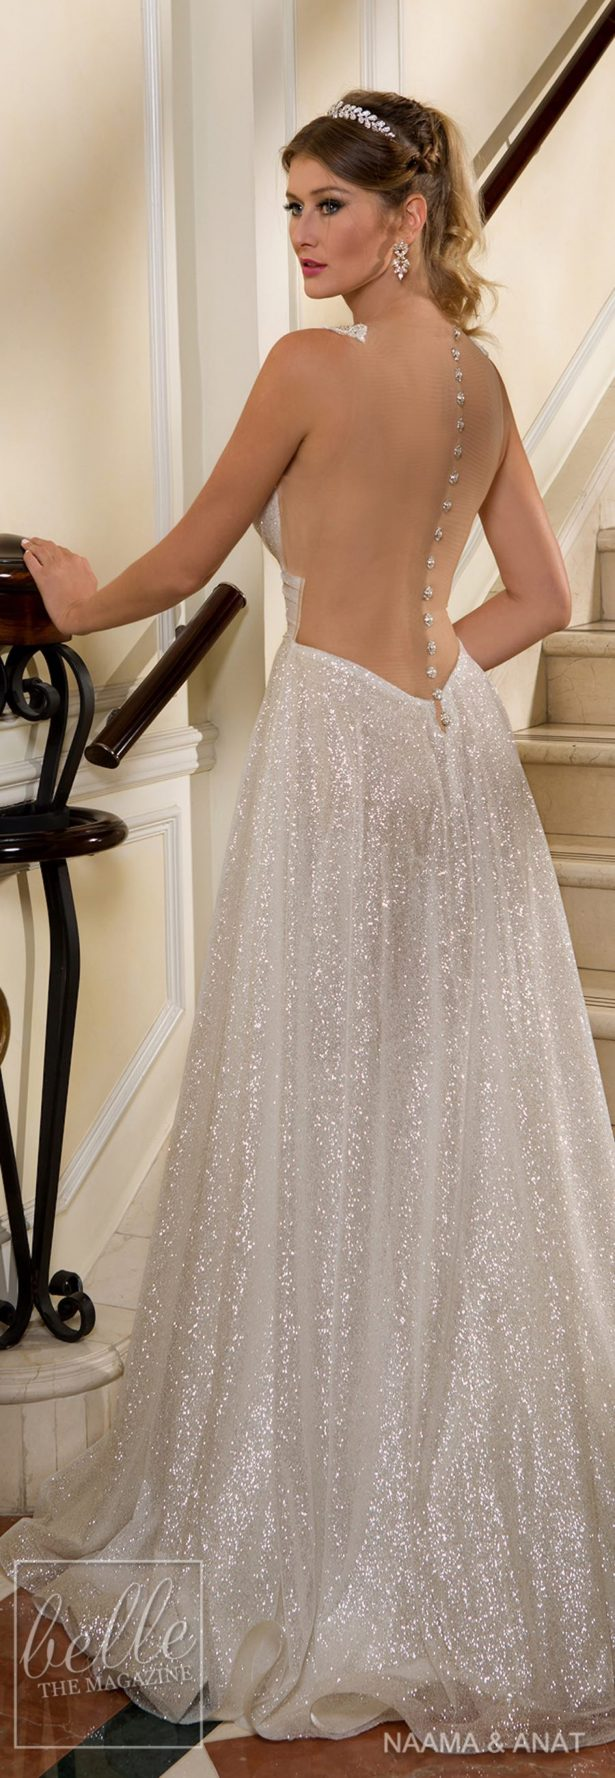 "Naama & Anat 2018 Wedding Dresses - ""Starlight"" Bridal Collection"